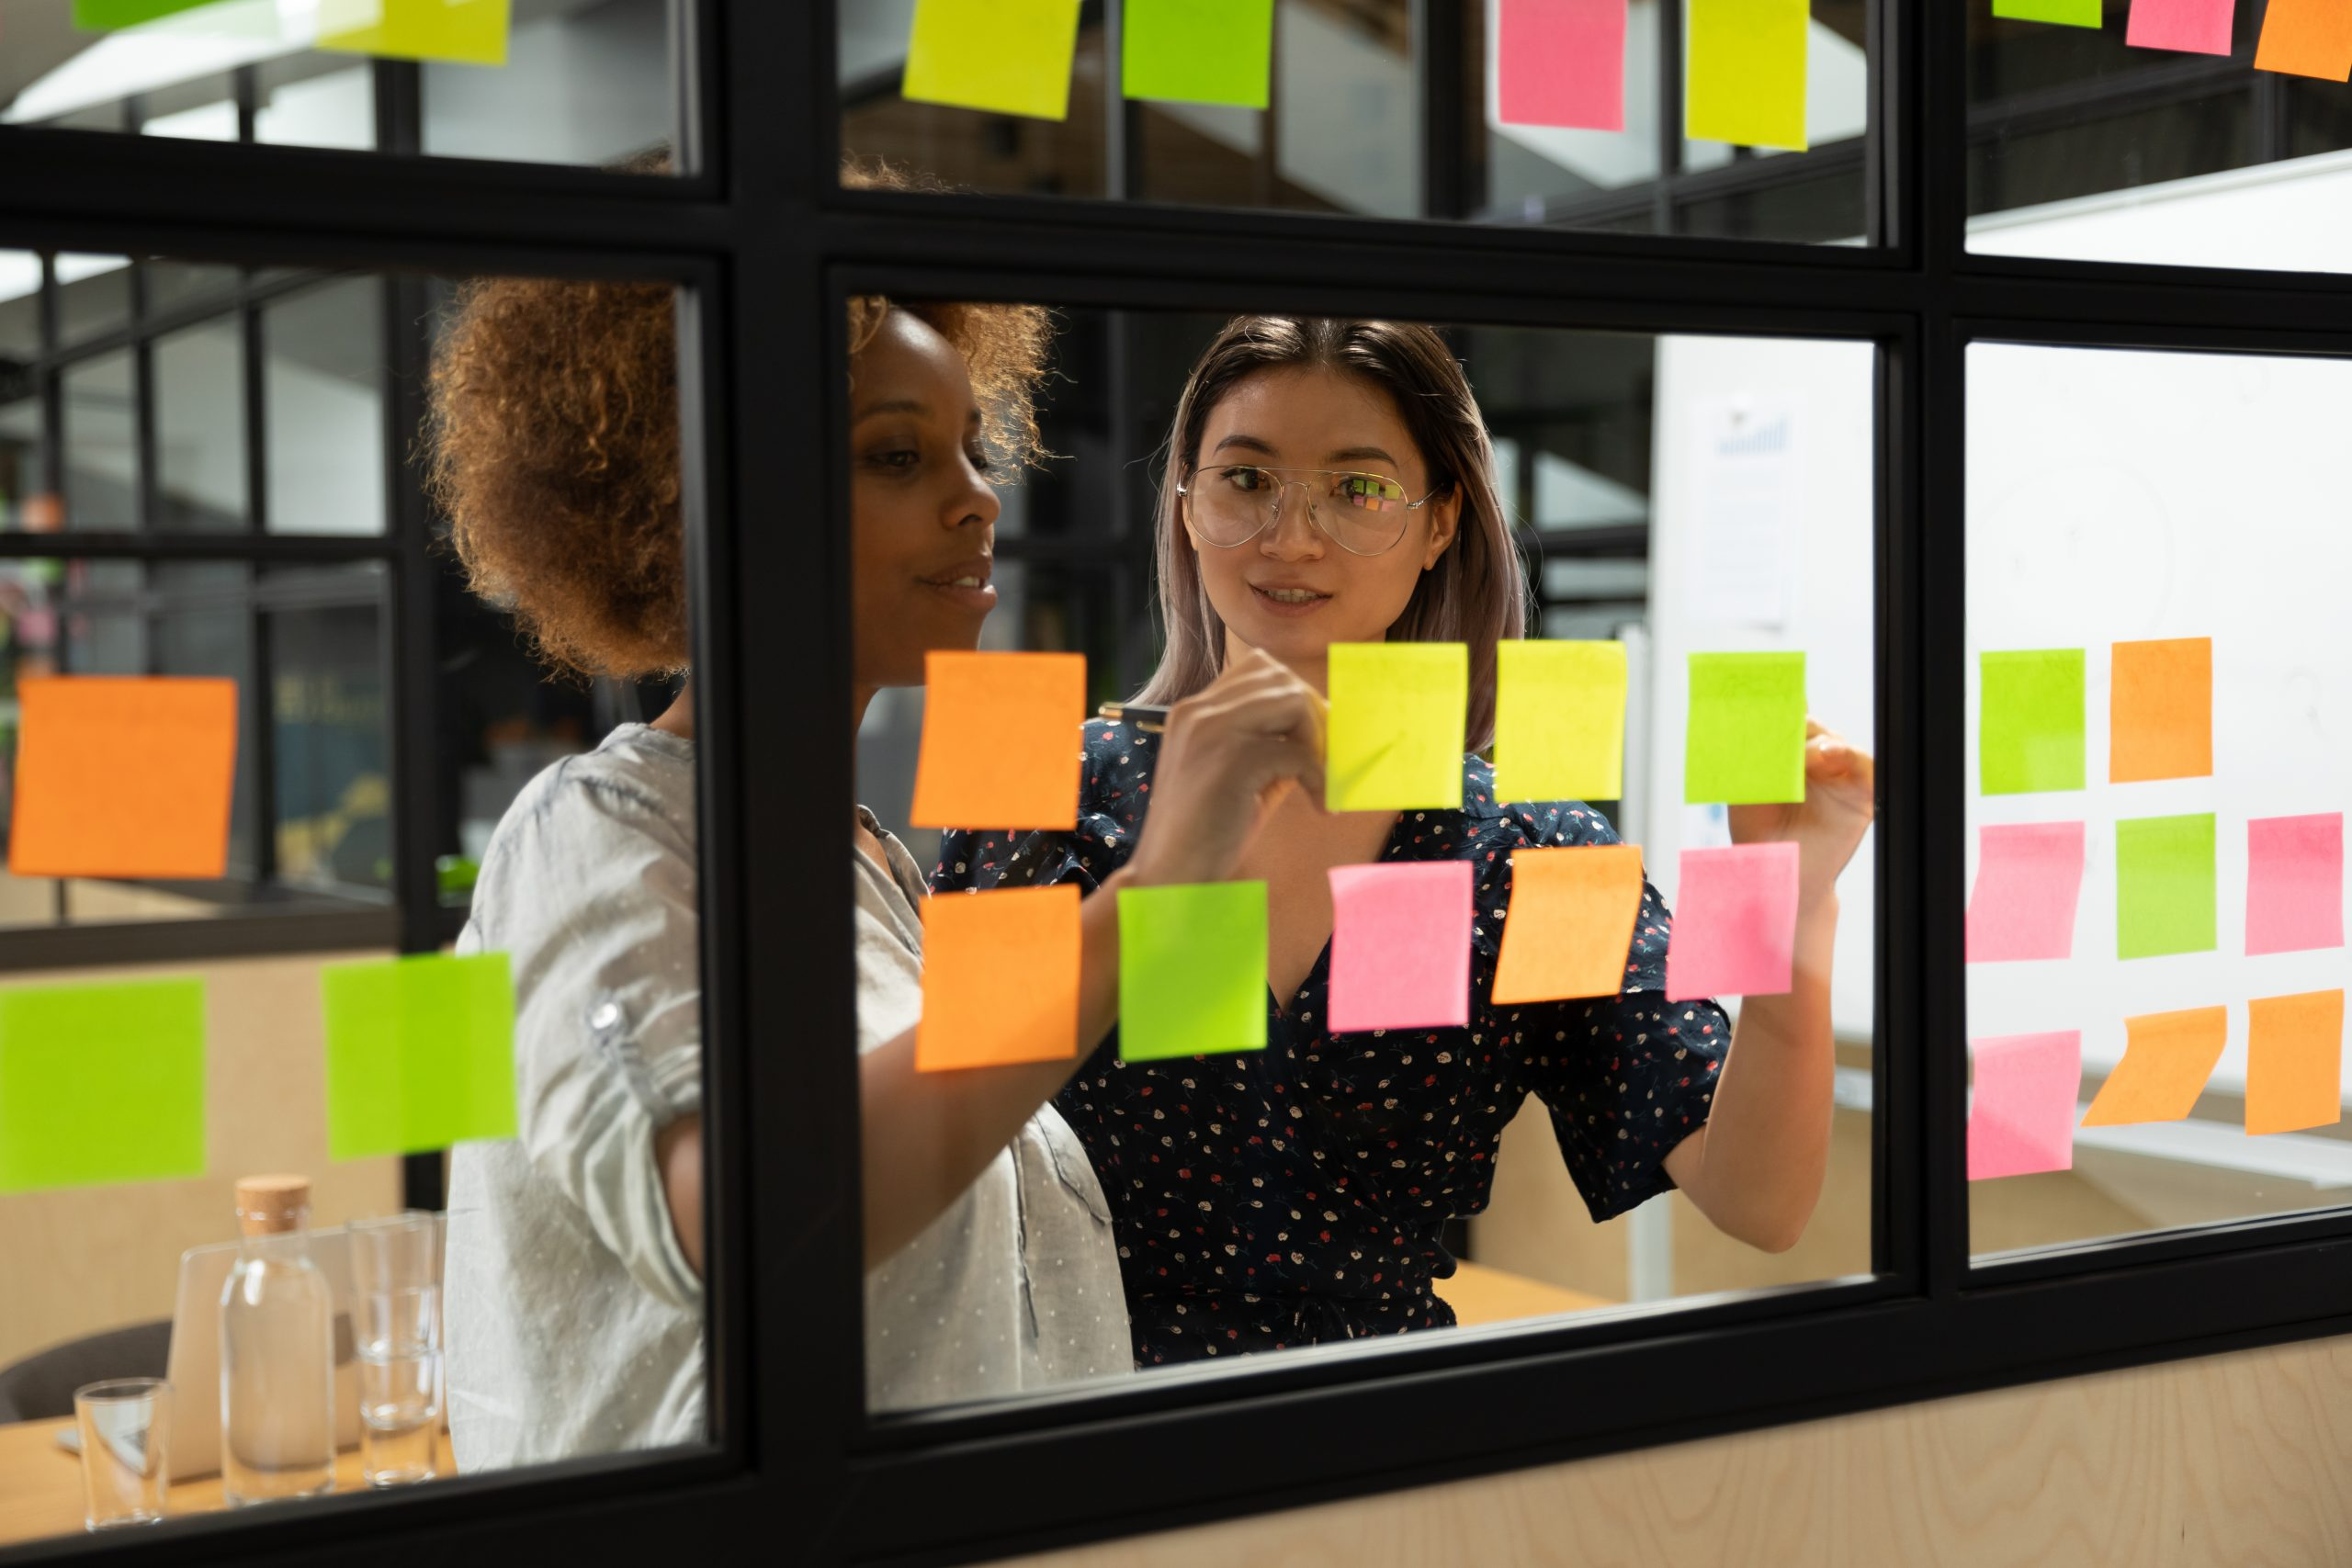 Two women work together with post-it notes on a board